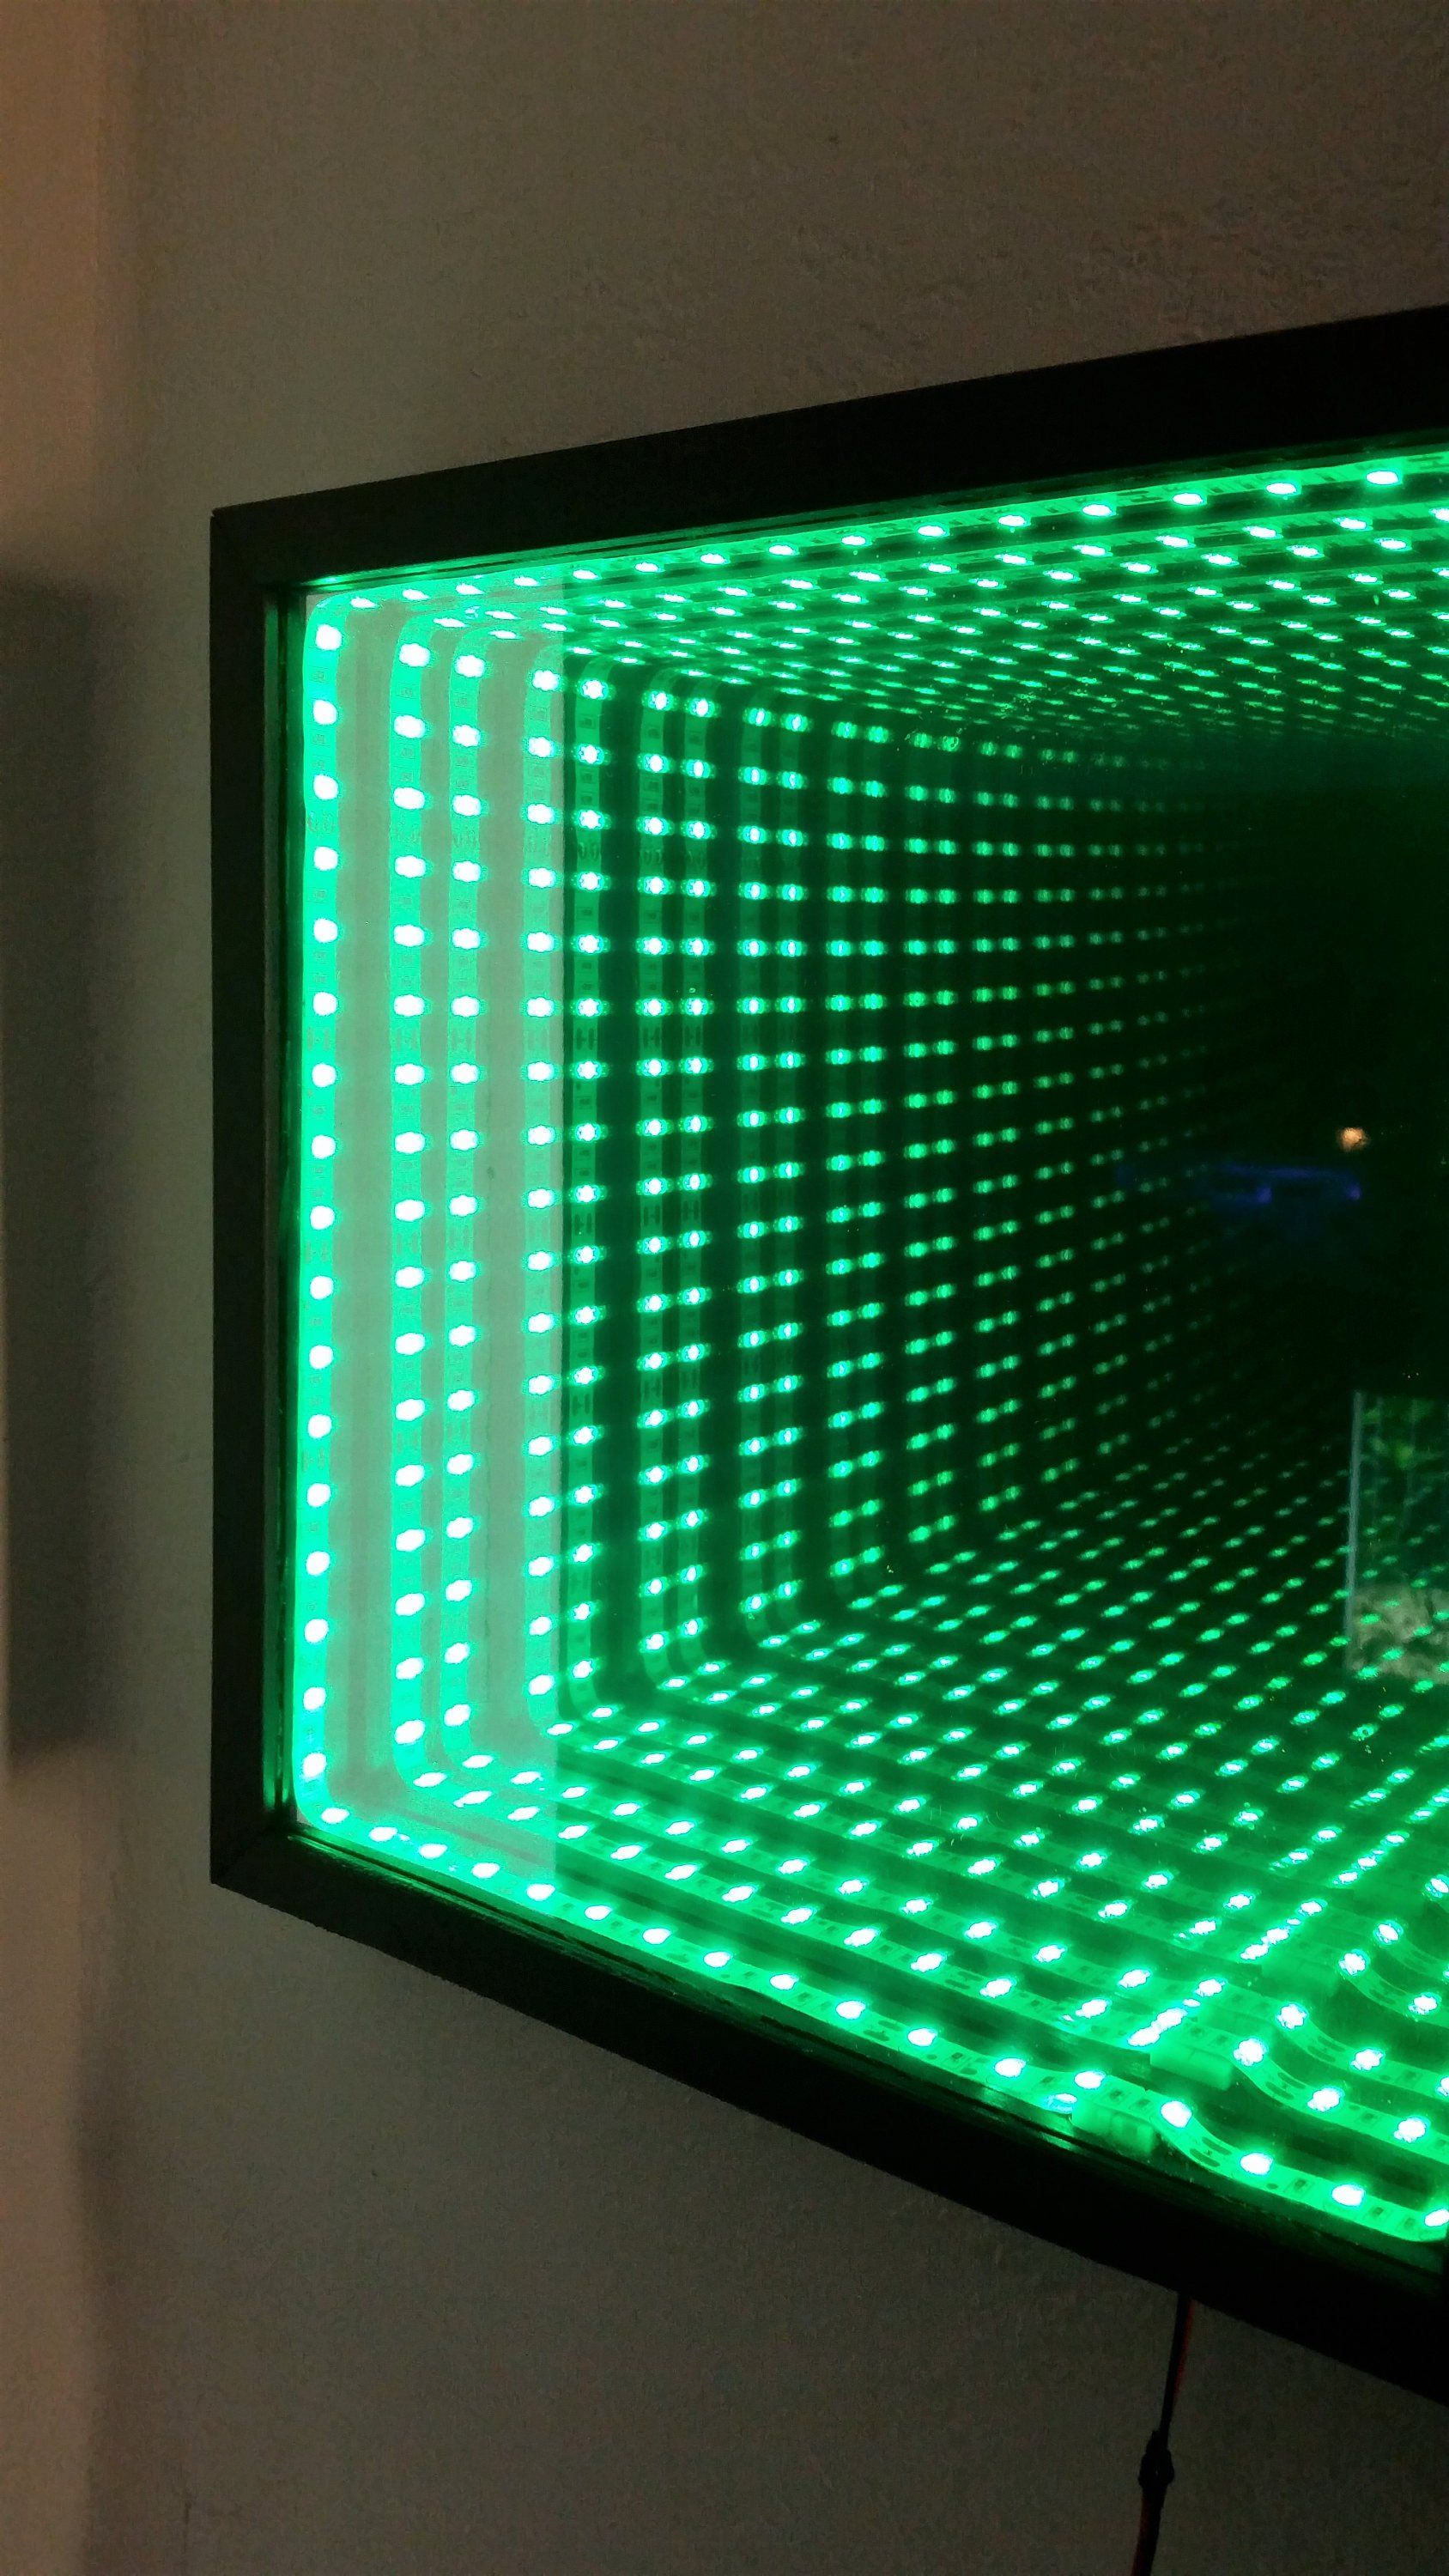 Pin by Infinite Reflections on Infinity Mirrors in 2019